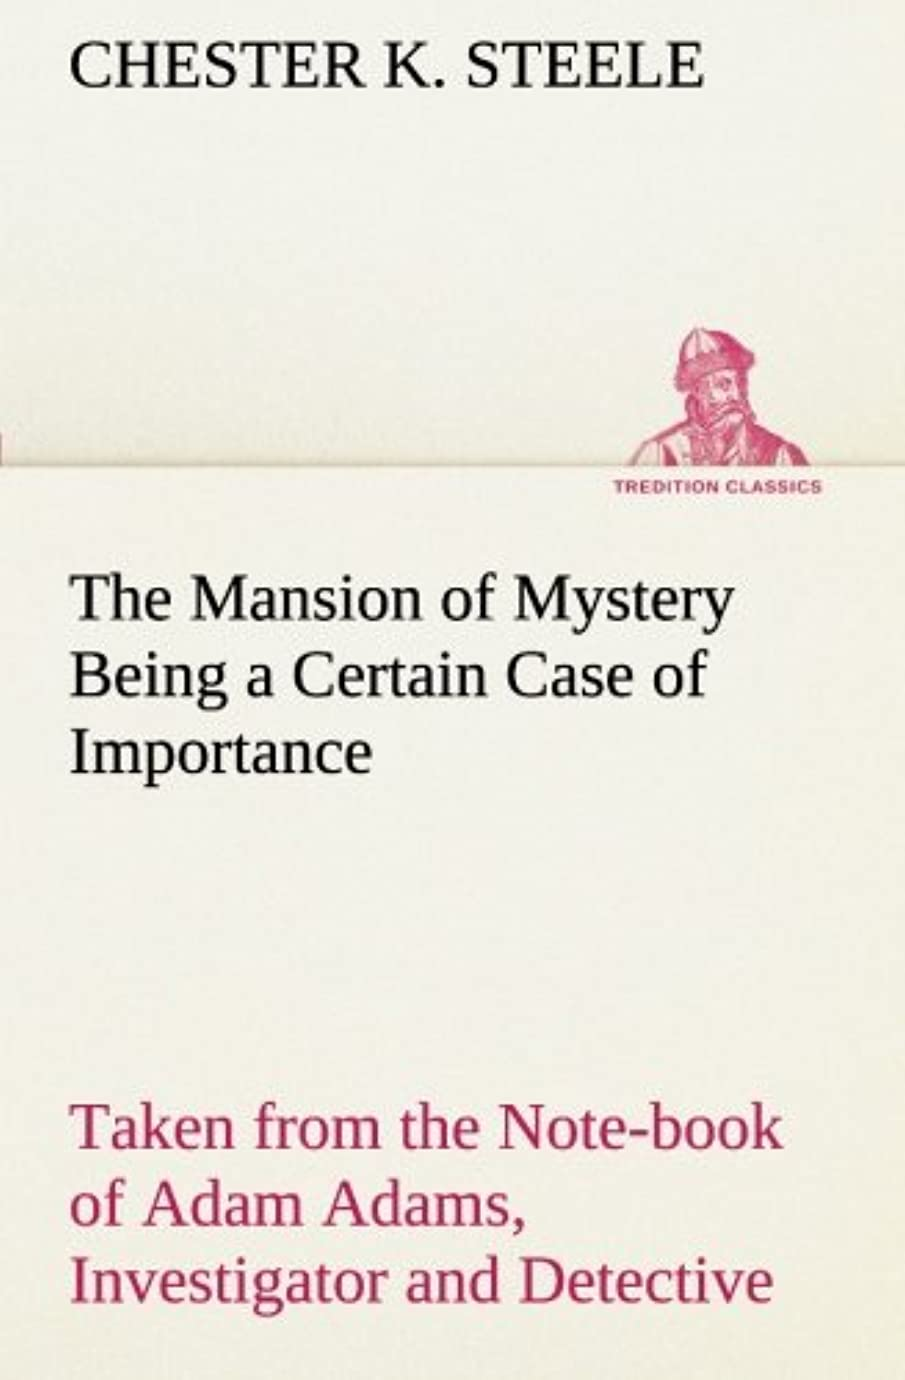 マニアック悲惨敬なThe Mansion of Mystery Being a Certain Case of Importance, Taken from the Note-Book of Adam Adams, Investigator and Detective (TREDITION CLASSICS)